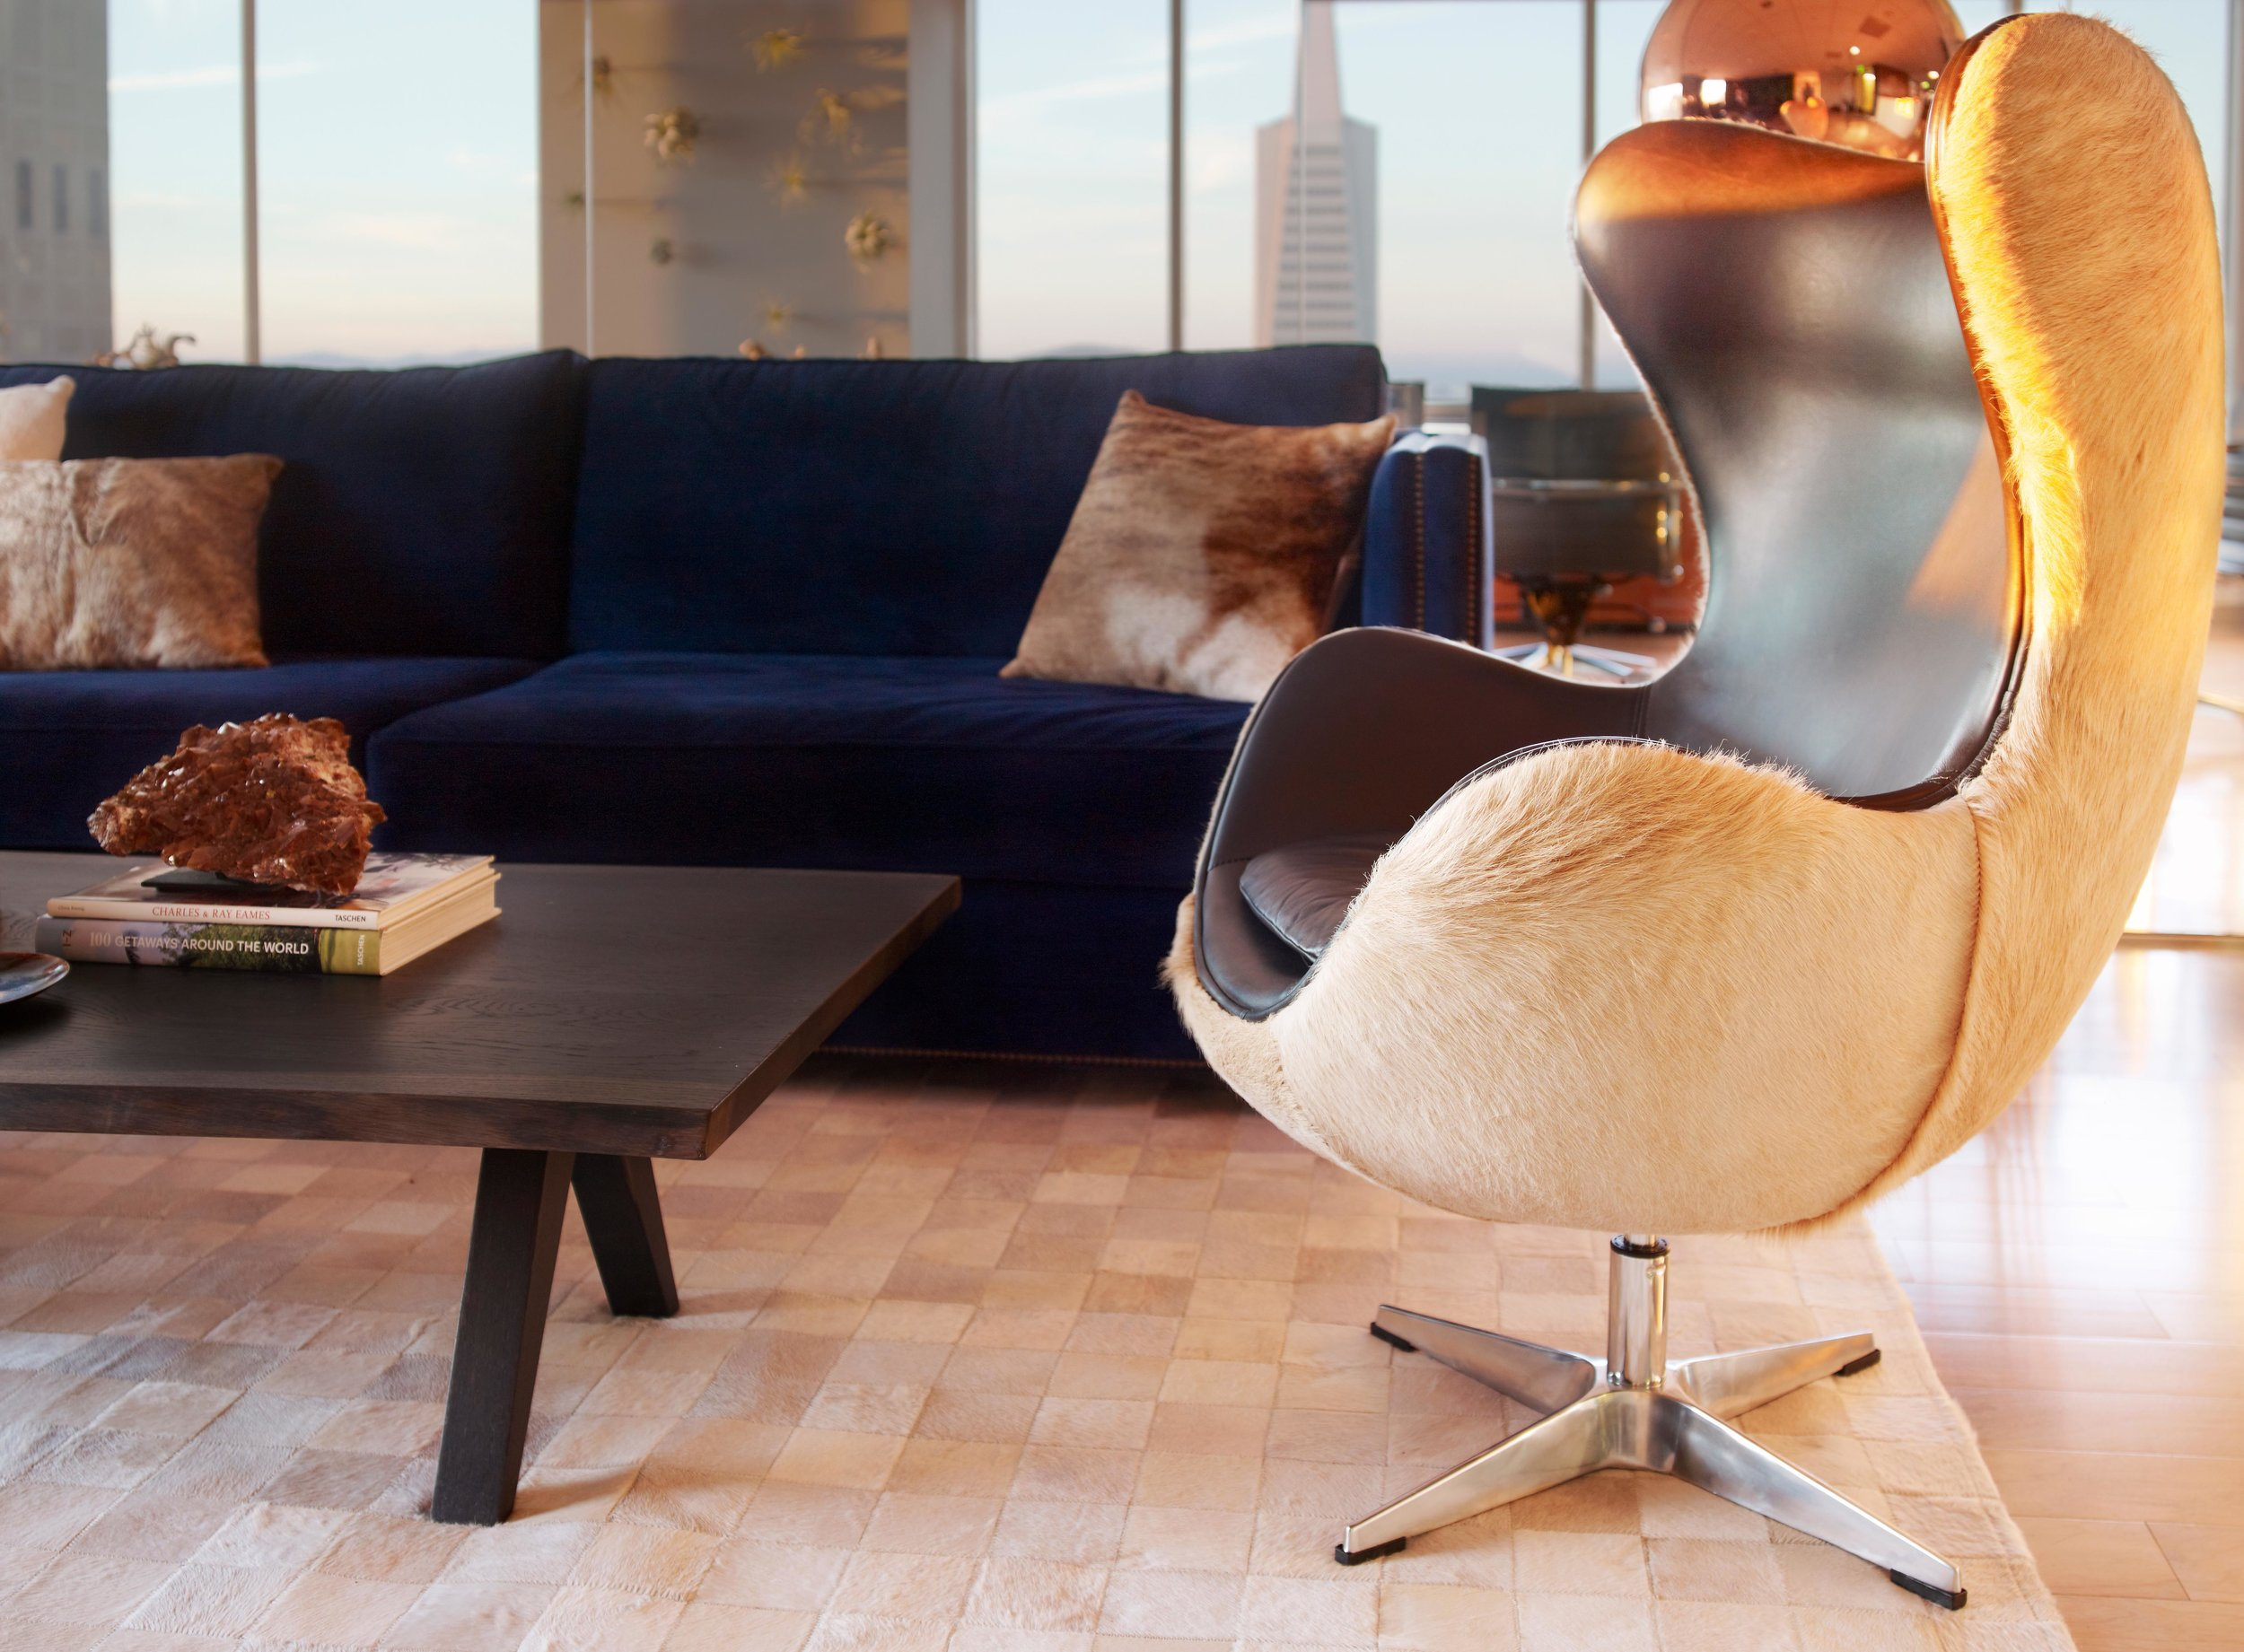 Fur chair with Transamerica Building.jpg